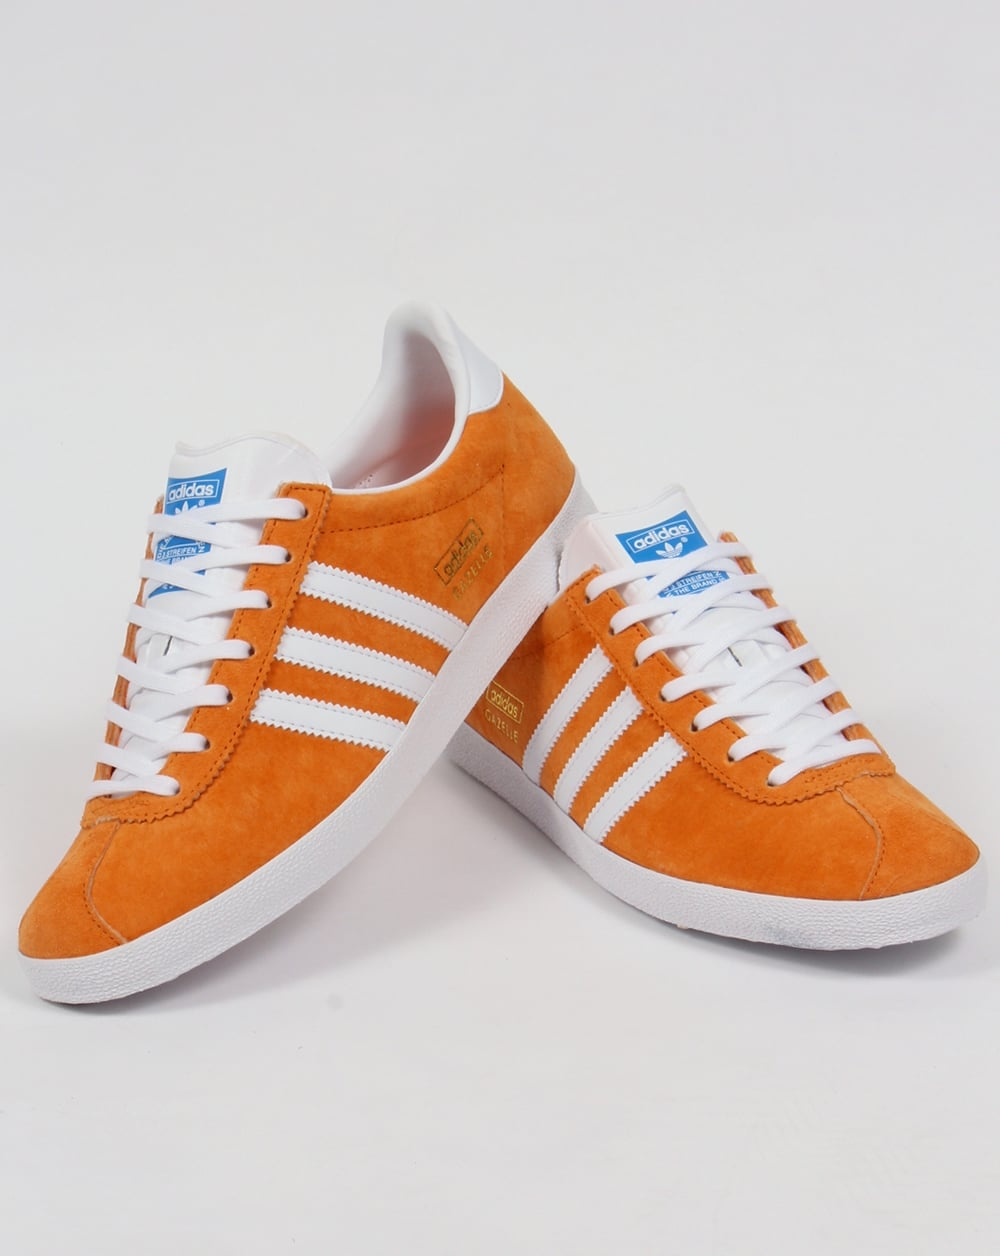 adidas gazelle og orange and black